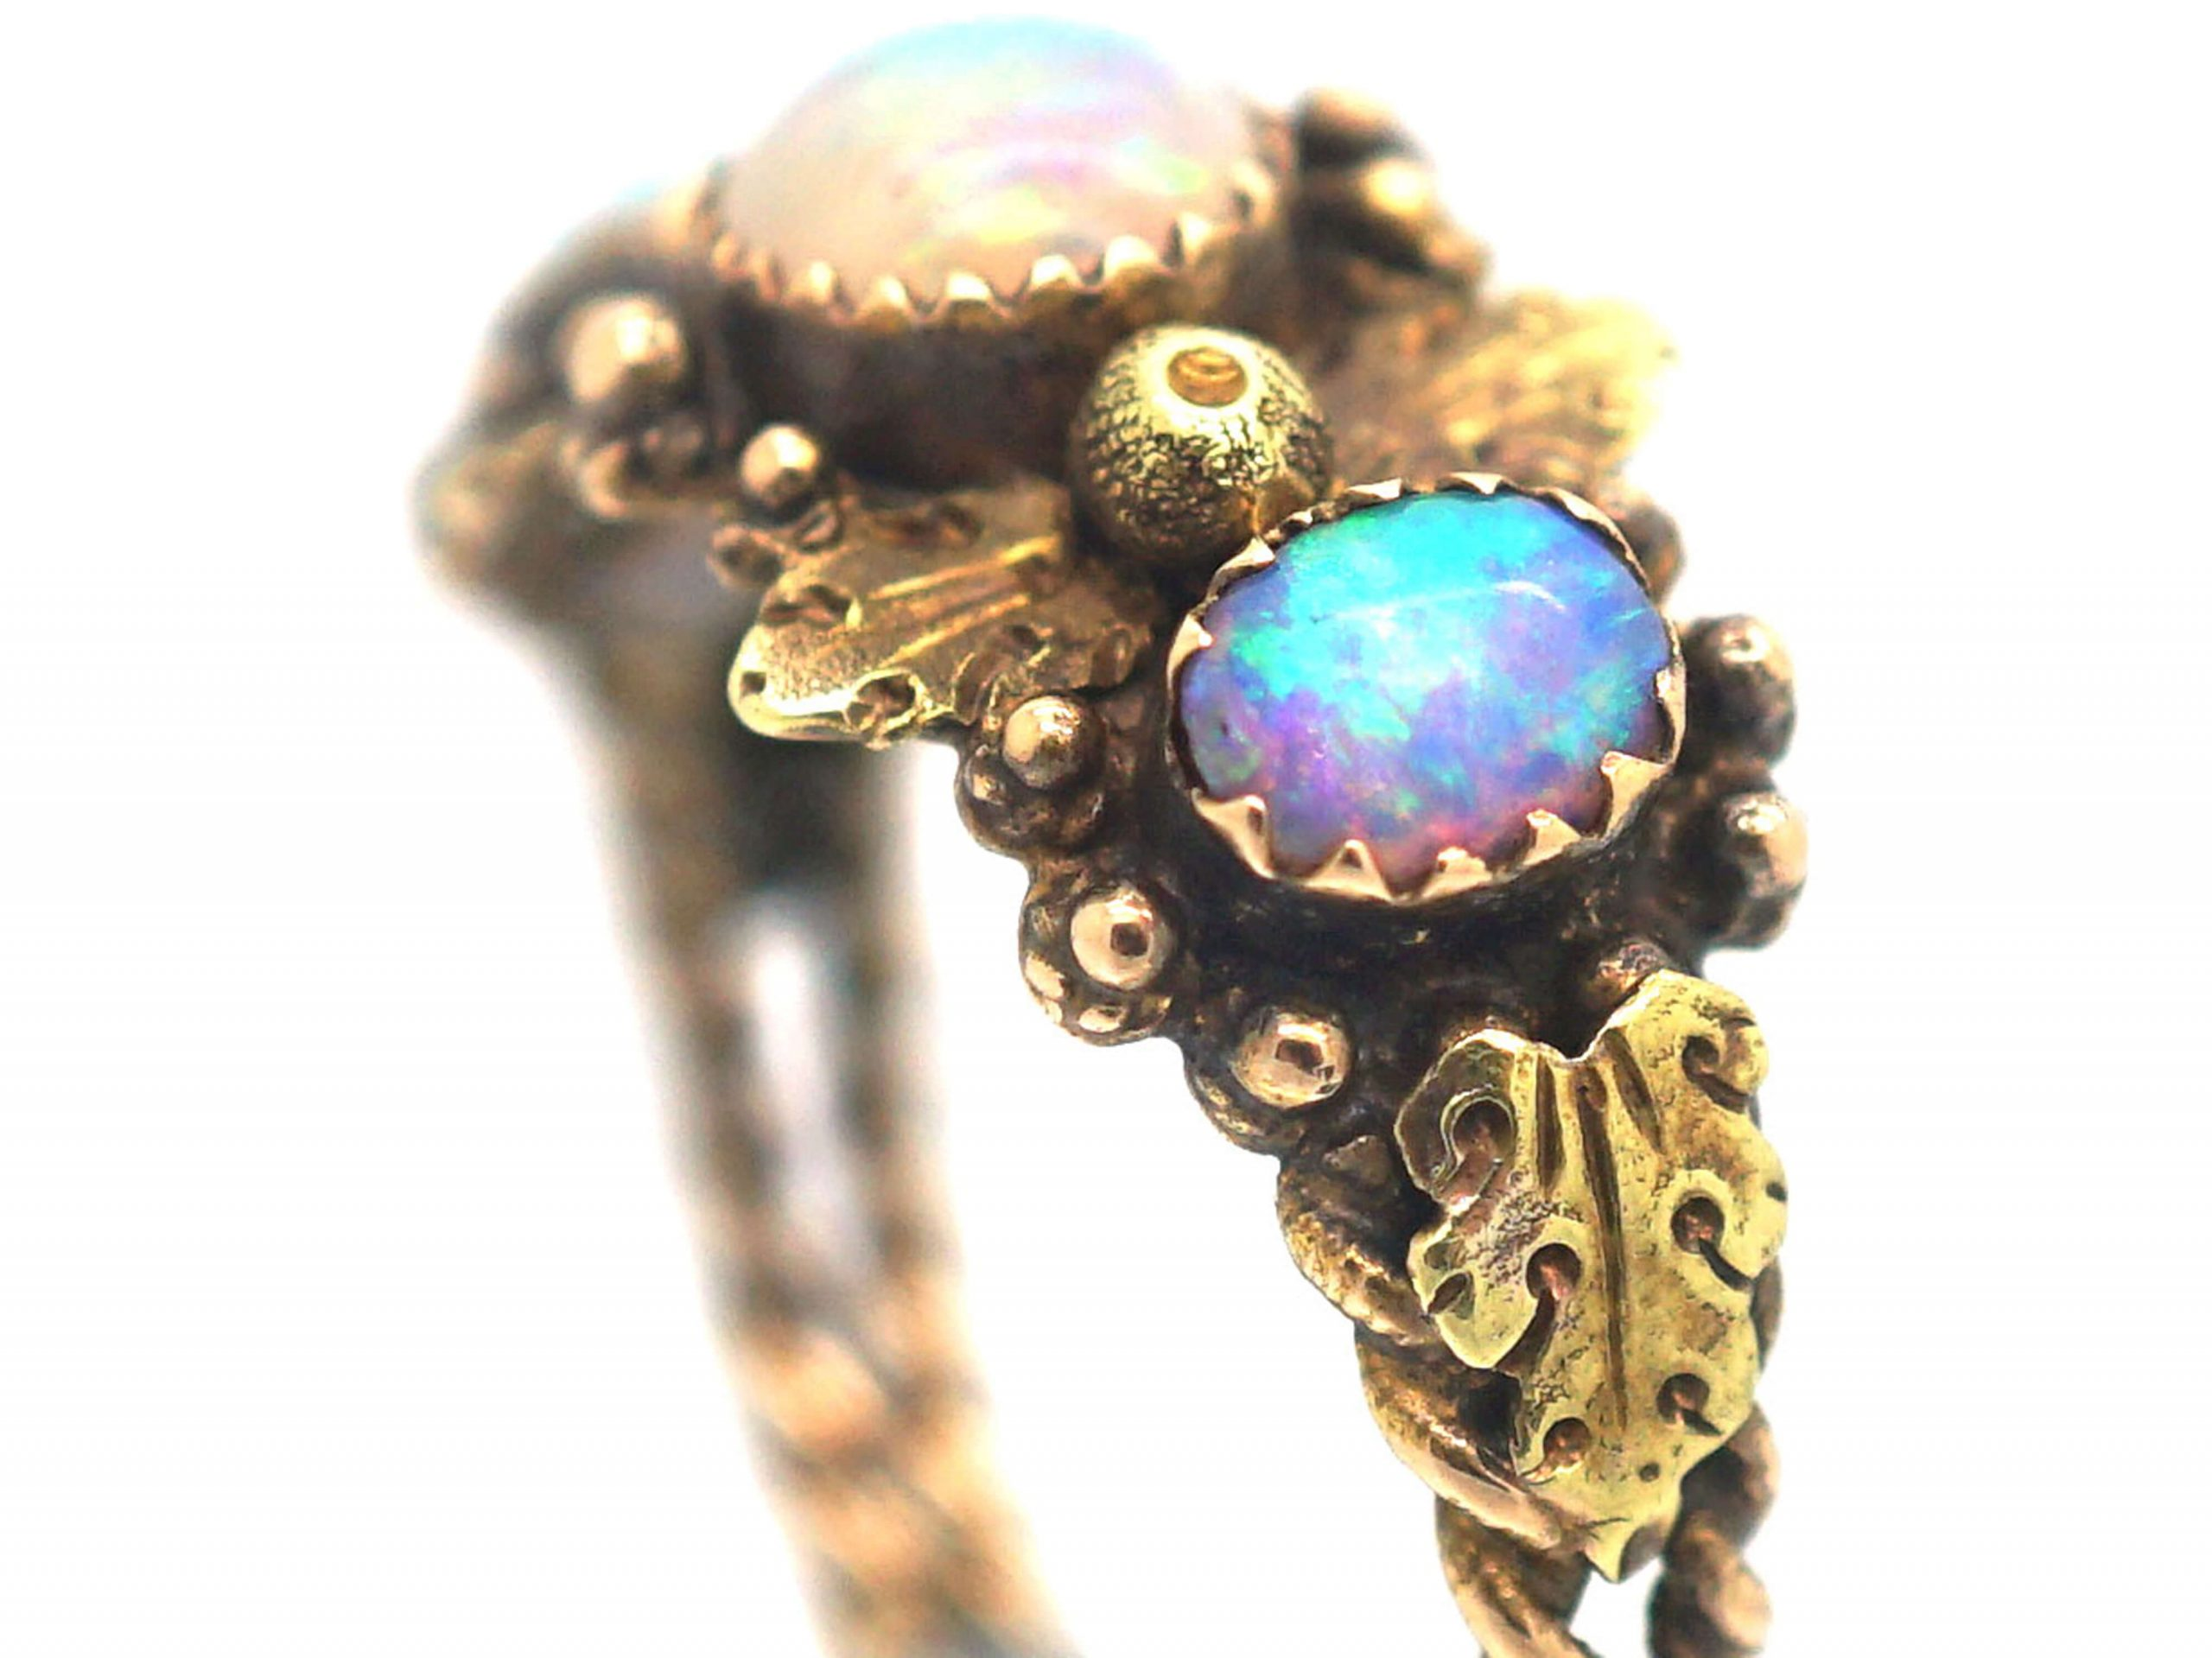 Regency 15ct Two Colour Gold Ring in an Acorn & Oak Leaf Design set with Three Opals